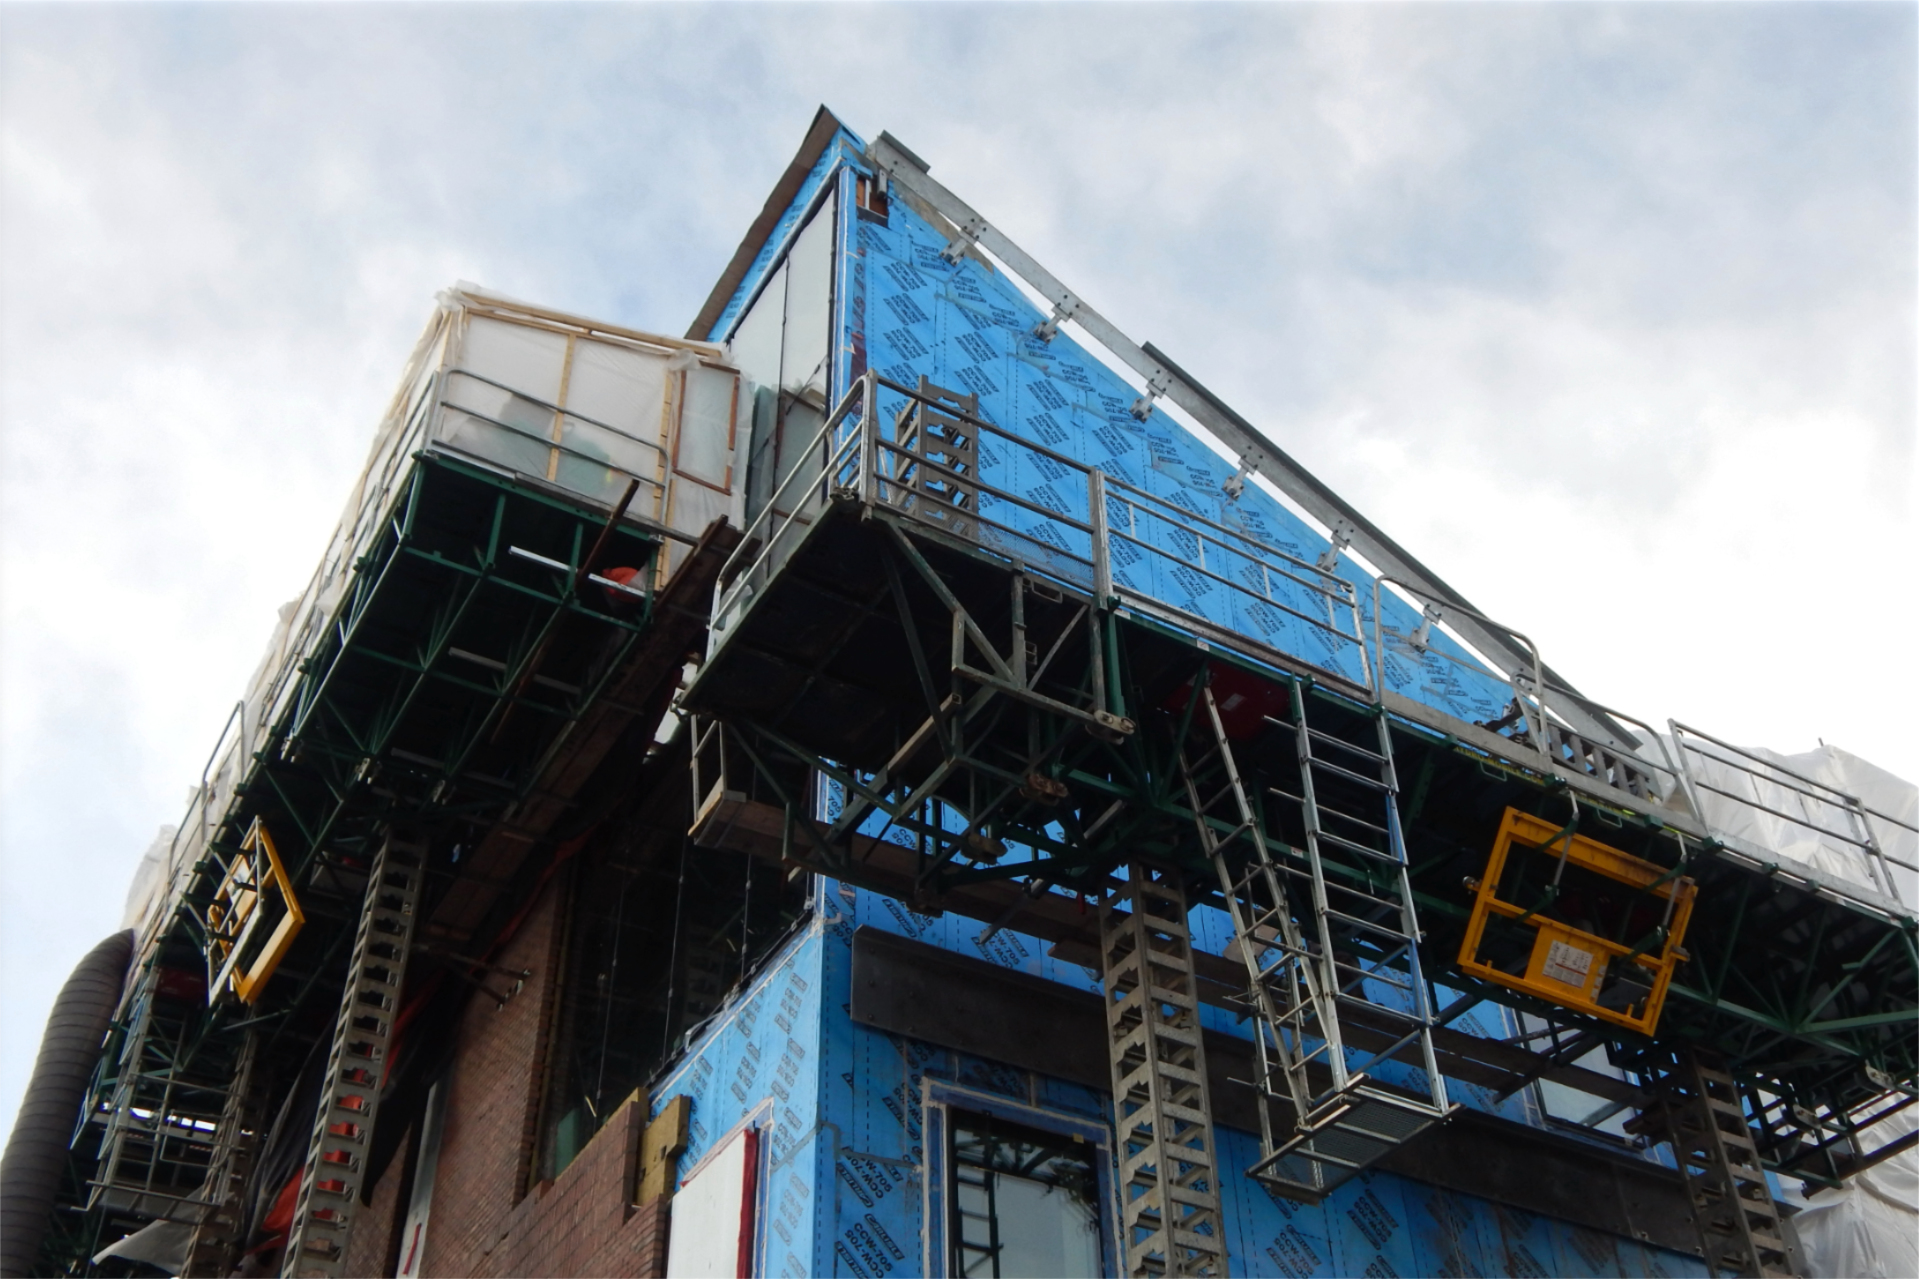 The corner of the Bonney Science Center where Bardwell Street and Campus Avenue meet is shown on Dec. 29. The metalwork atop the blue wall will support the outer lip of the rain gutter, as well as the uppermost courses of brick. (Doug Hubley/Bates College)